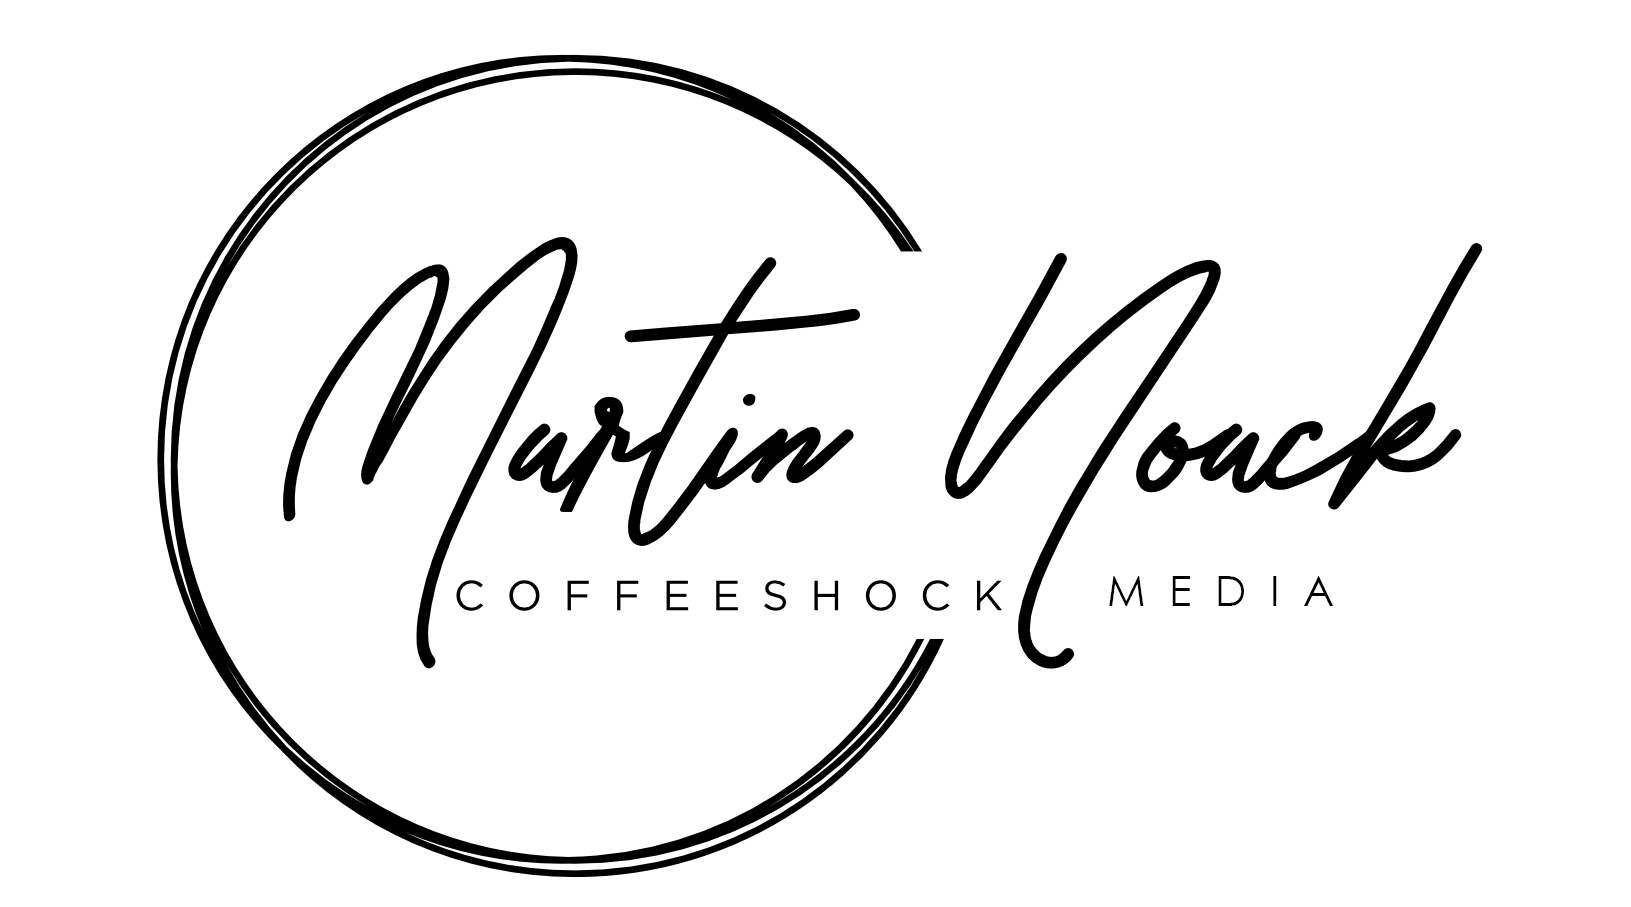 CoffeeShock Media